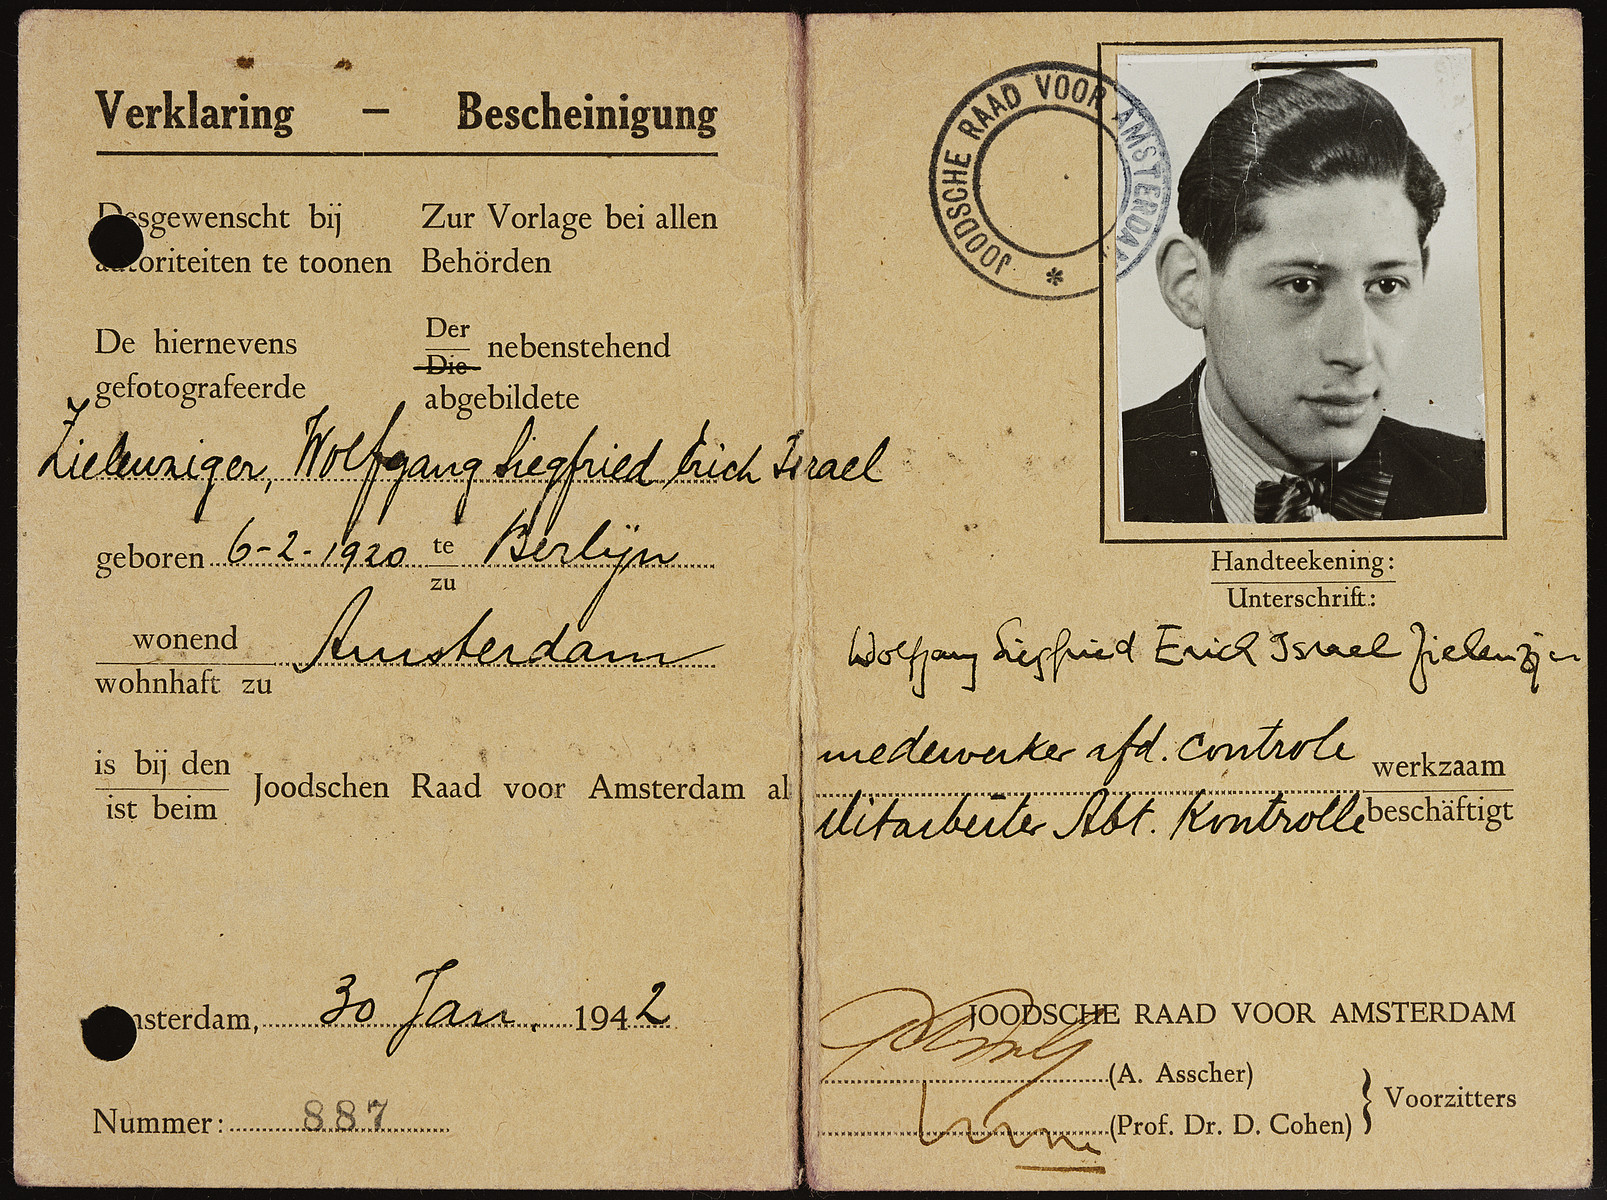 Interior pages of a Joodsche Raad (Jewish Council) identification card issued to Erich Zielenziger.